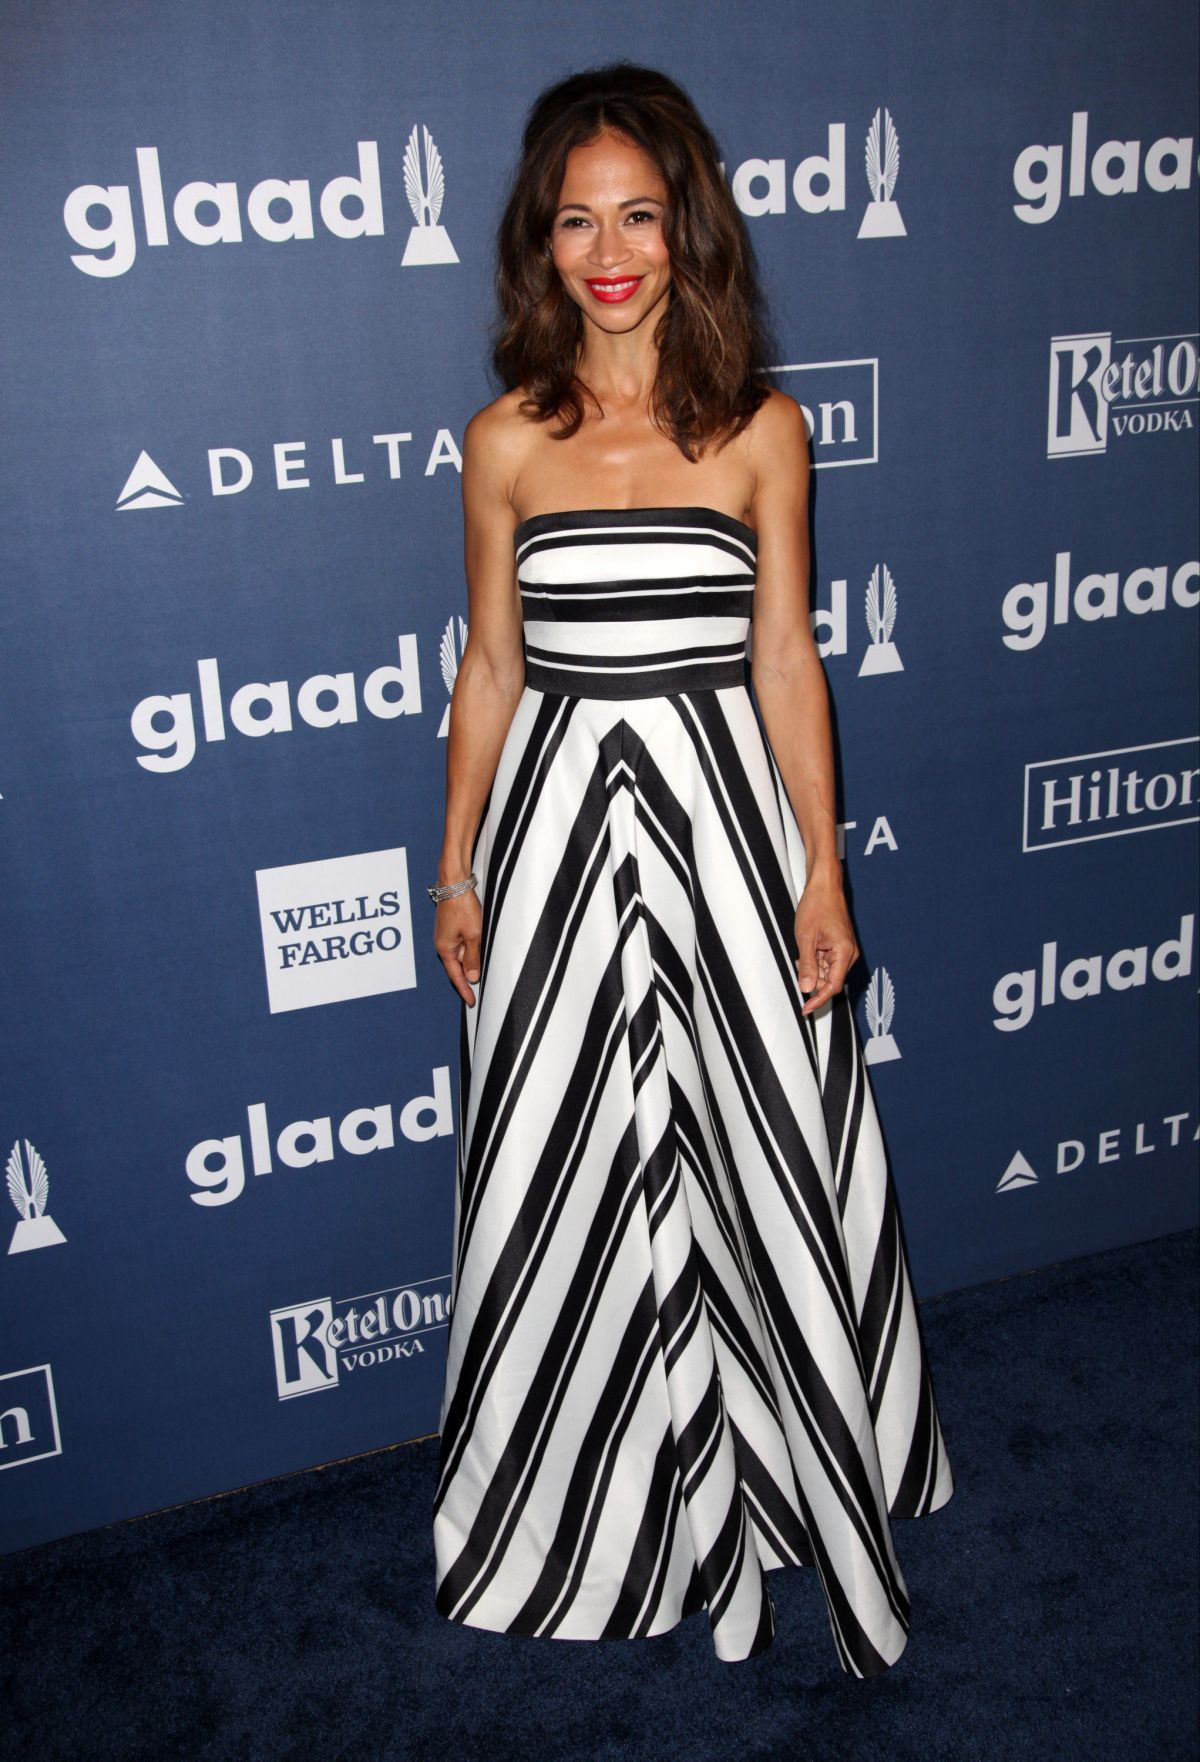 SHERRI SAUM at 2016 Glaad Media Awards in Beverly Hills 04/02/2016